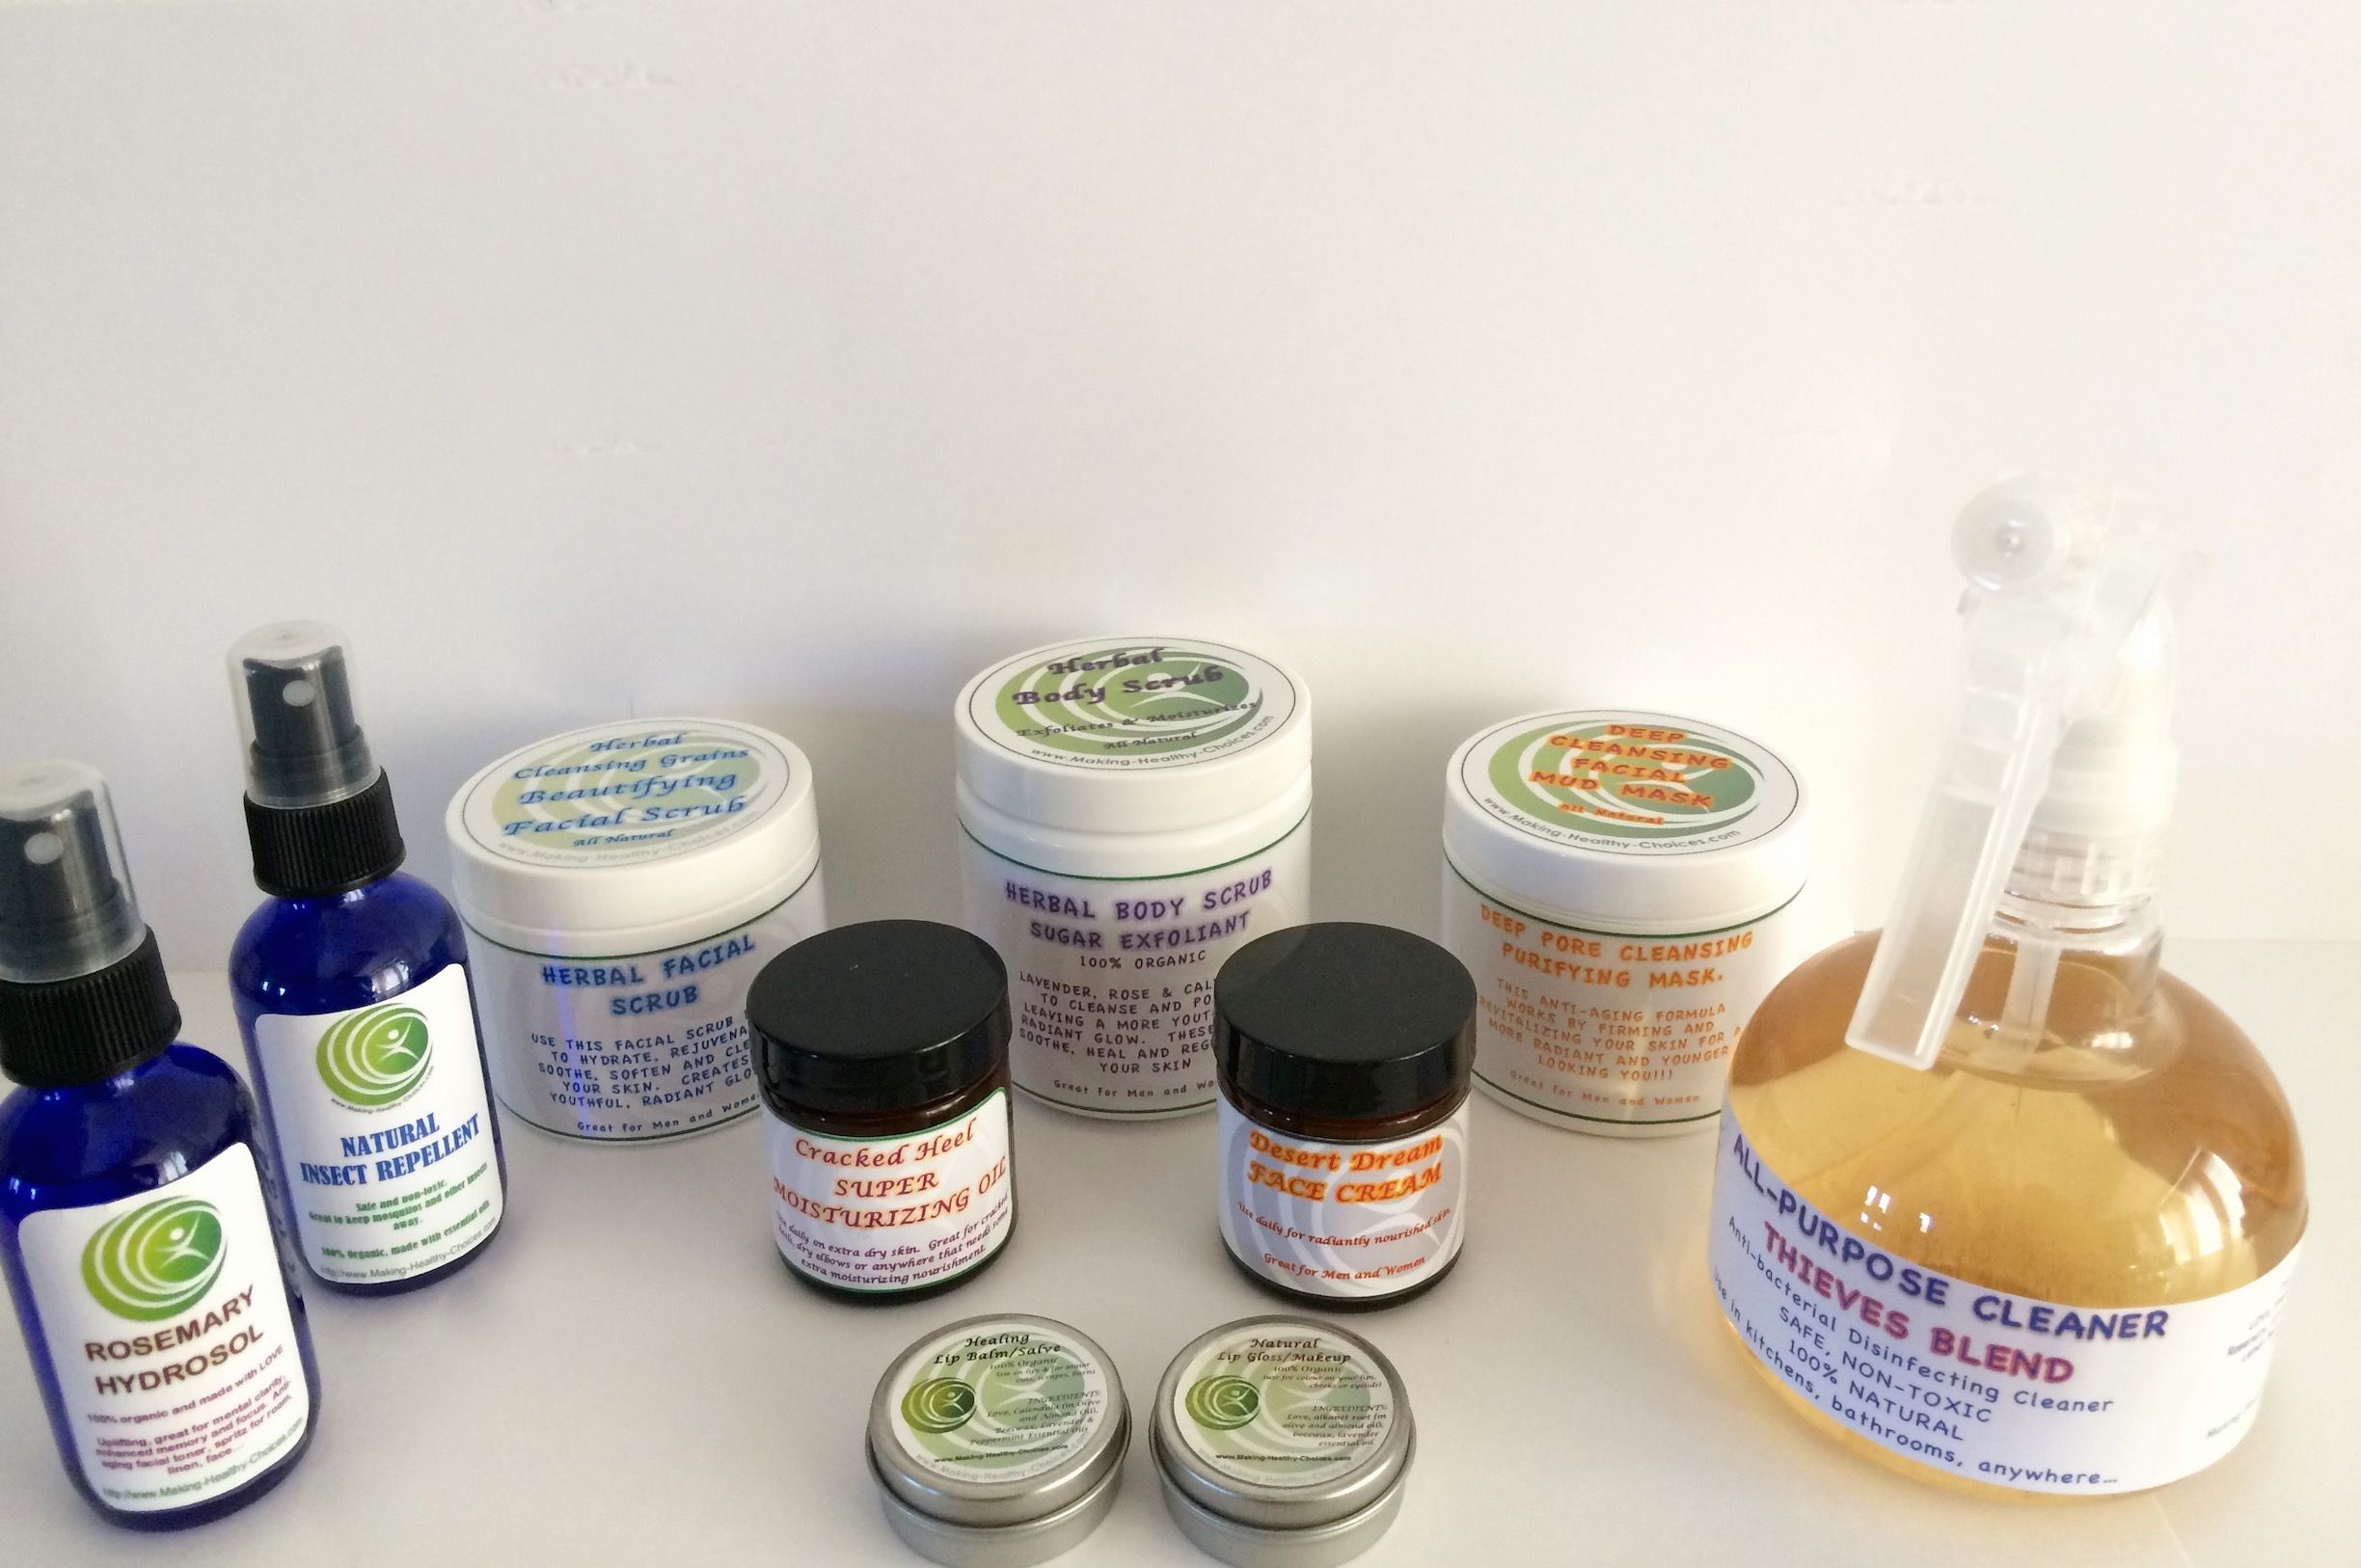 Natural Organic Skin Care Homemade Recipes Click For Recipes And Tips Insect Repell Organic Skin Care Natural Organic Skincare Organic Skin Care Recipes